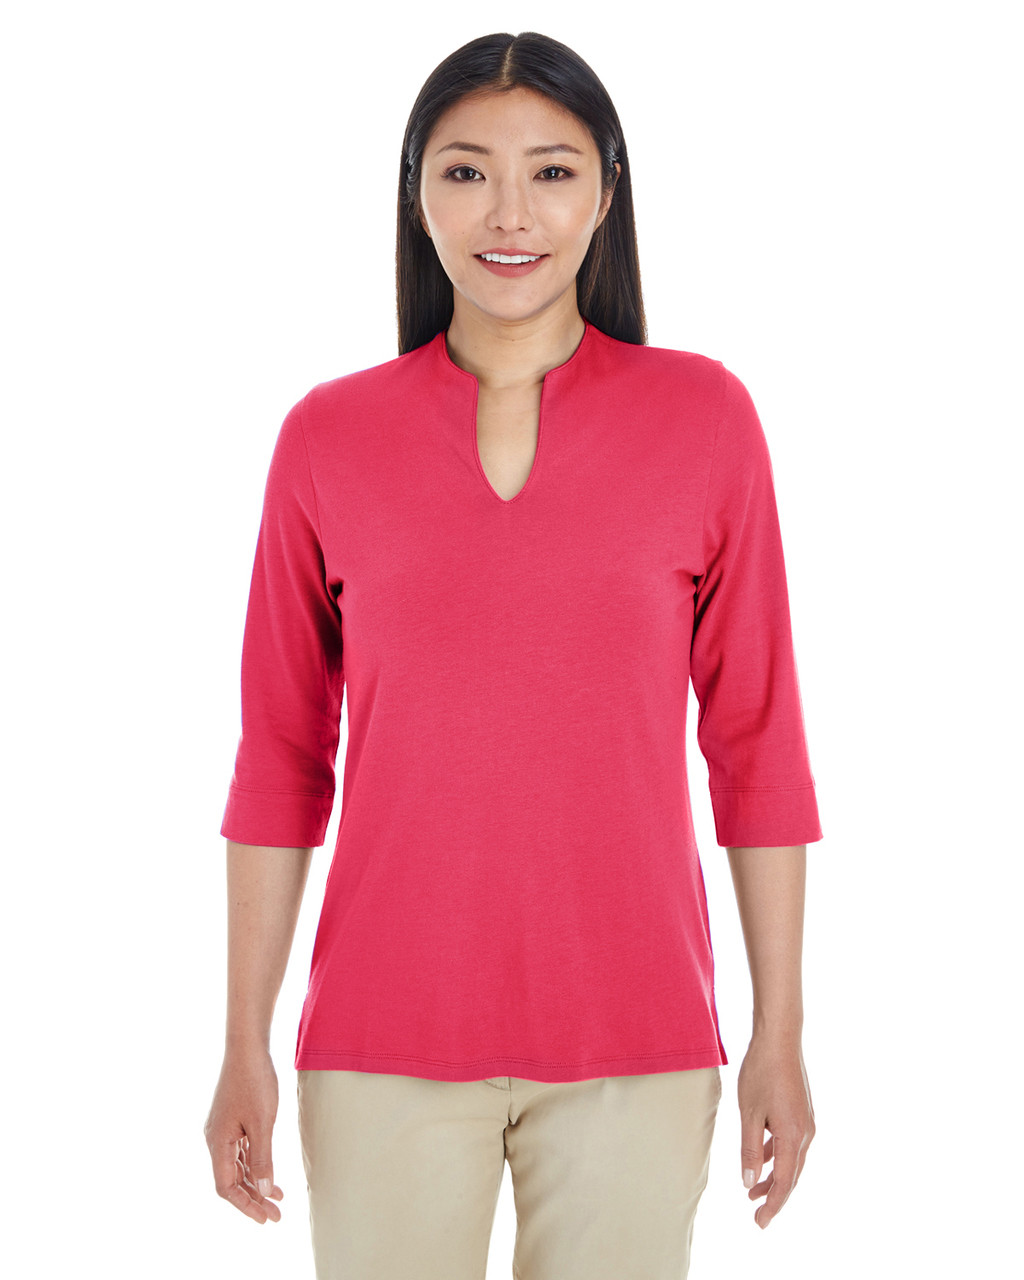 Red - DP188W Devon & Jones Ladies' Perfect Fit™ Tailored Open Neckline Top